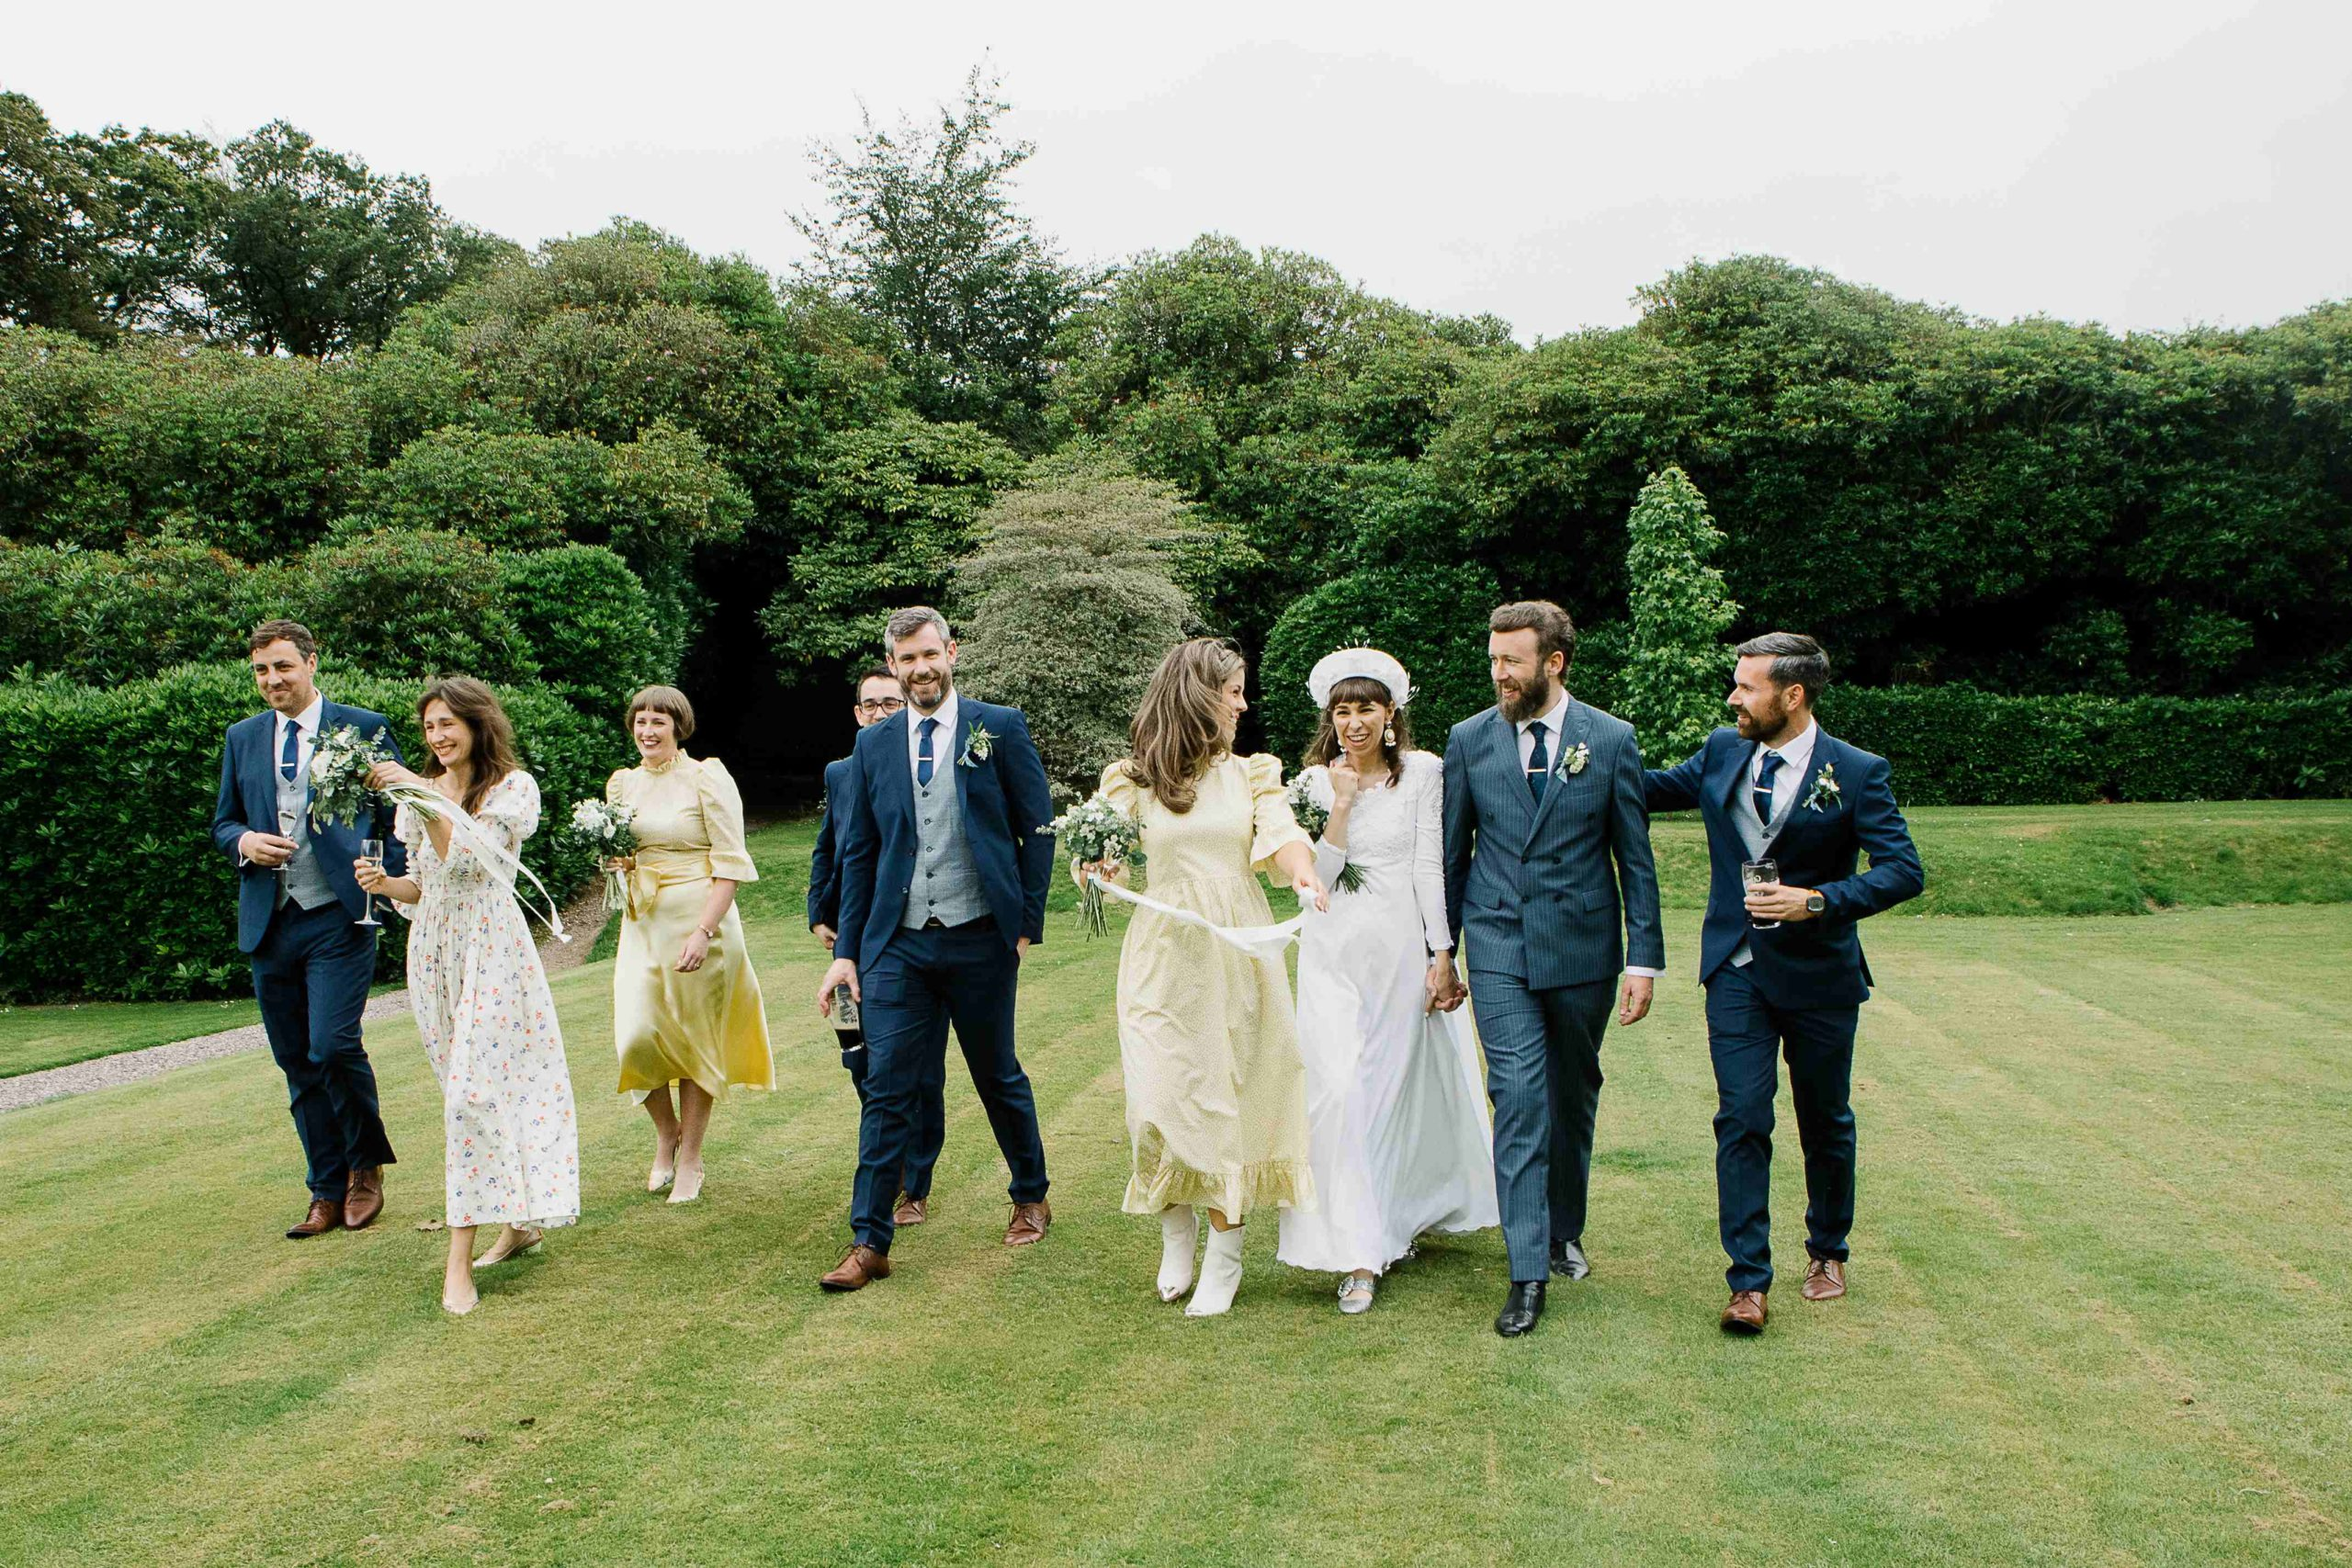 wedding photographer Dublin Danielle O'Hora